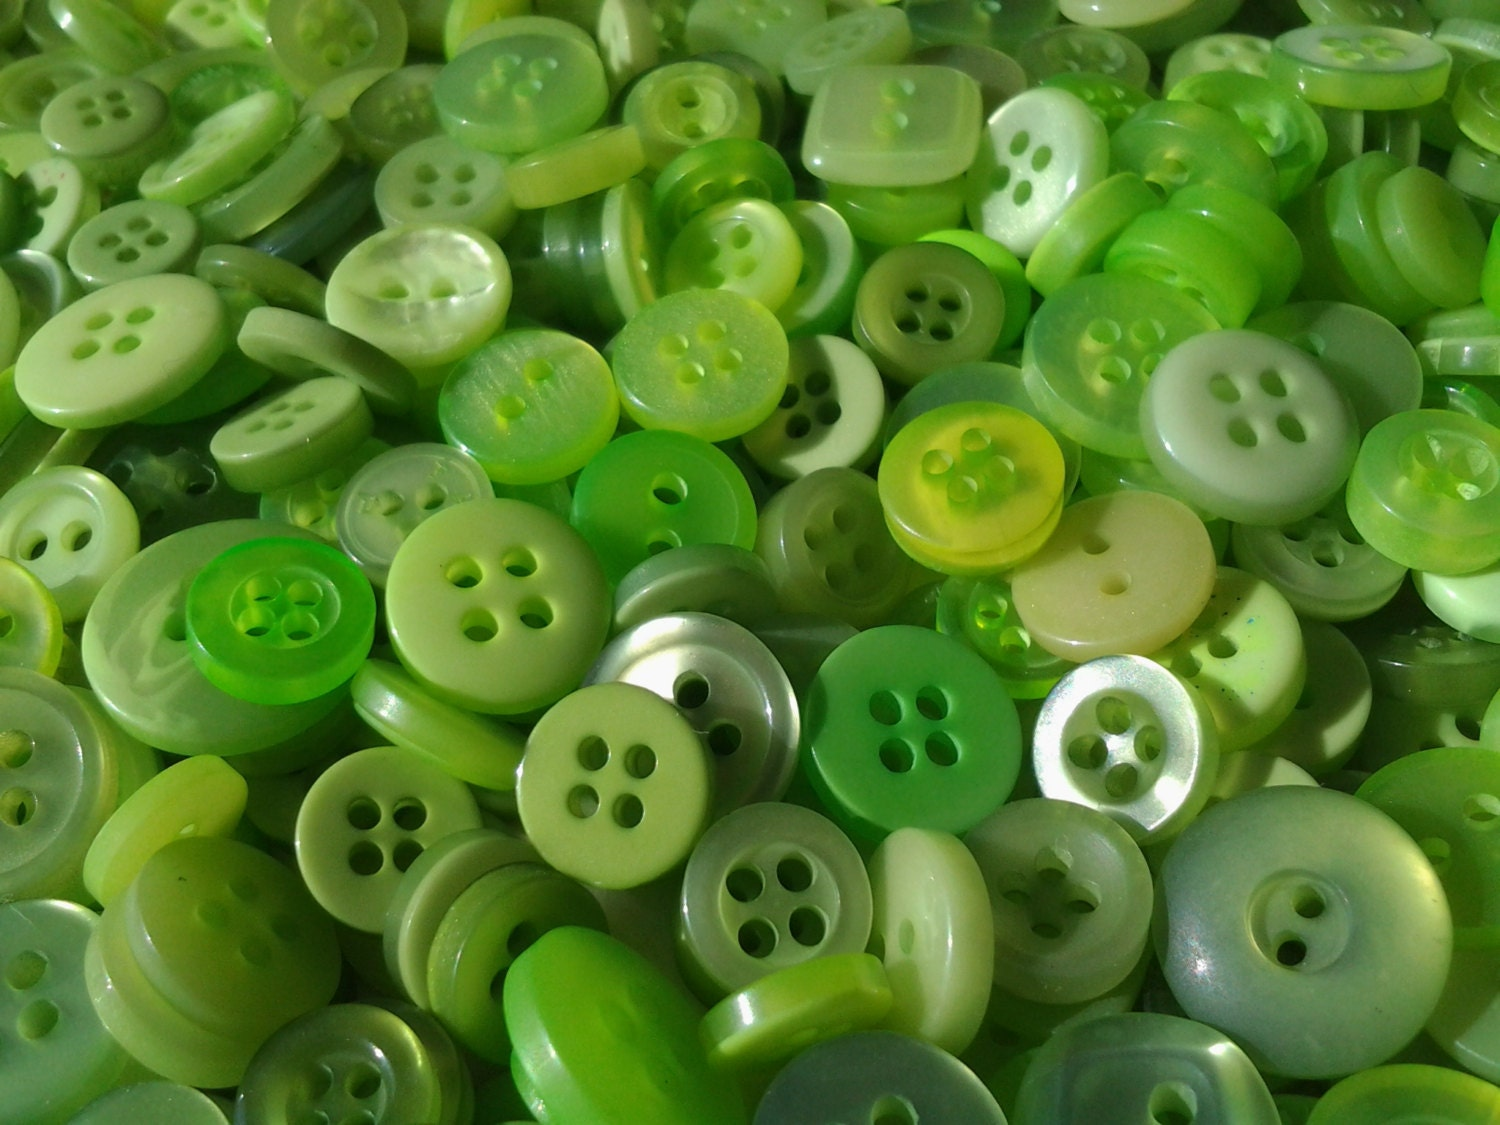 100 Small Assorted Spring Green, Apple Green and Lime Green Buttons, bulk green buttons, no shanks - moggyssupplyshop